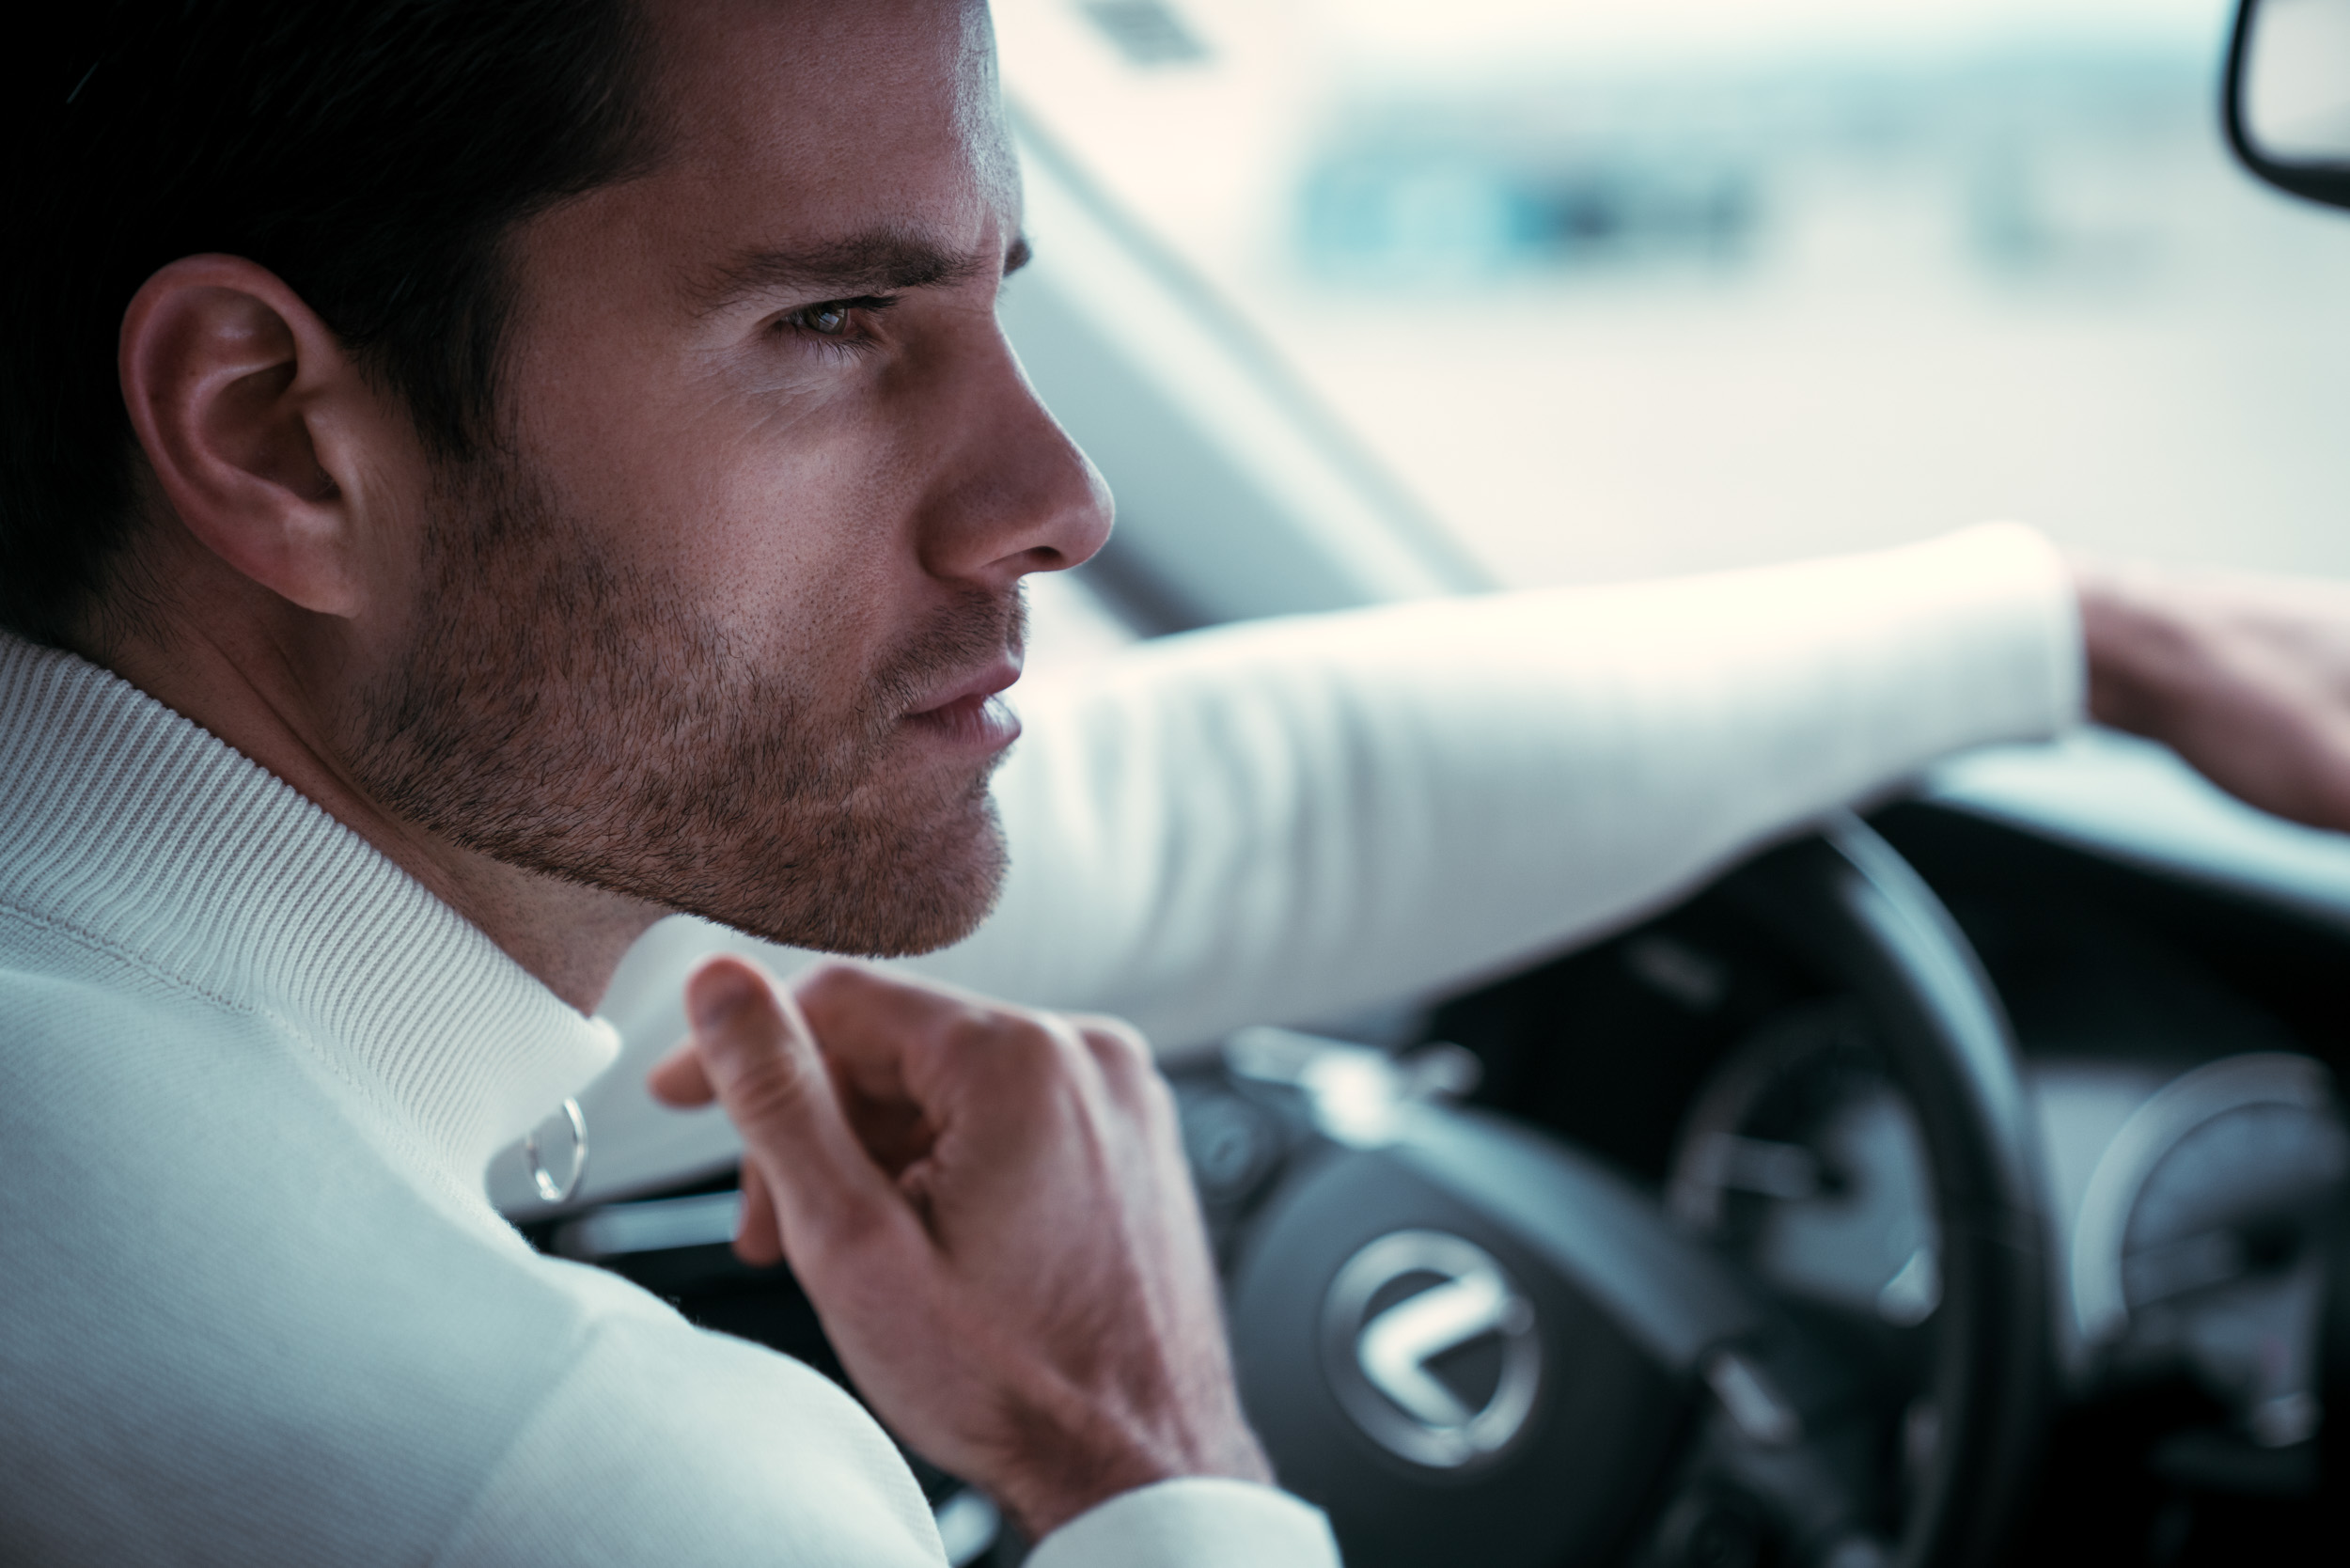 Man in white turtleneck sweater sits inside his Lexus